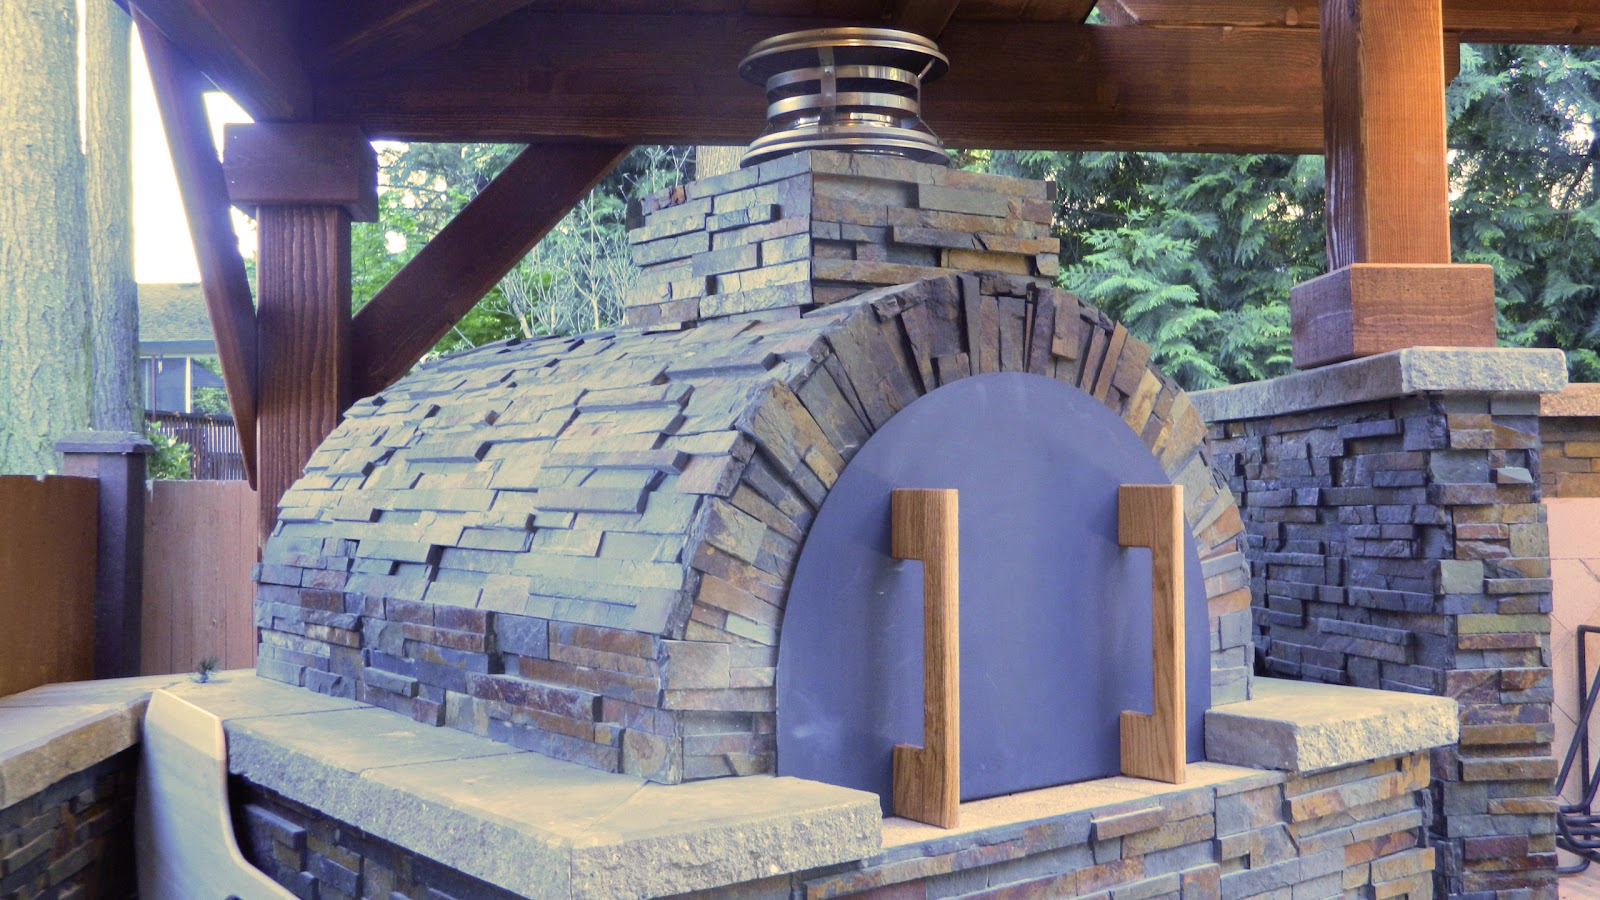 Outdoor Kitchen With Argentinian Grill Brickwood Pizza Oven And Smoker In Kirkland Washington